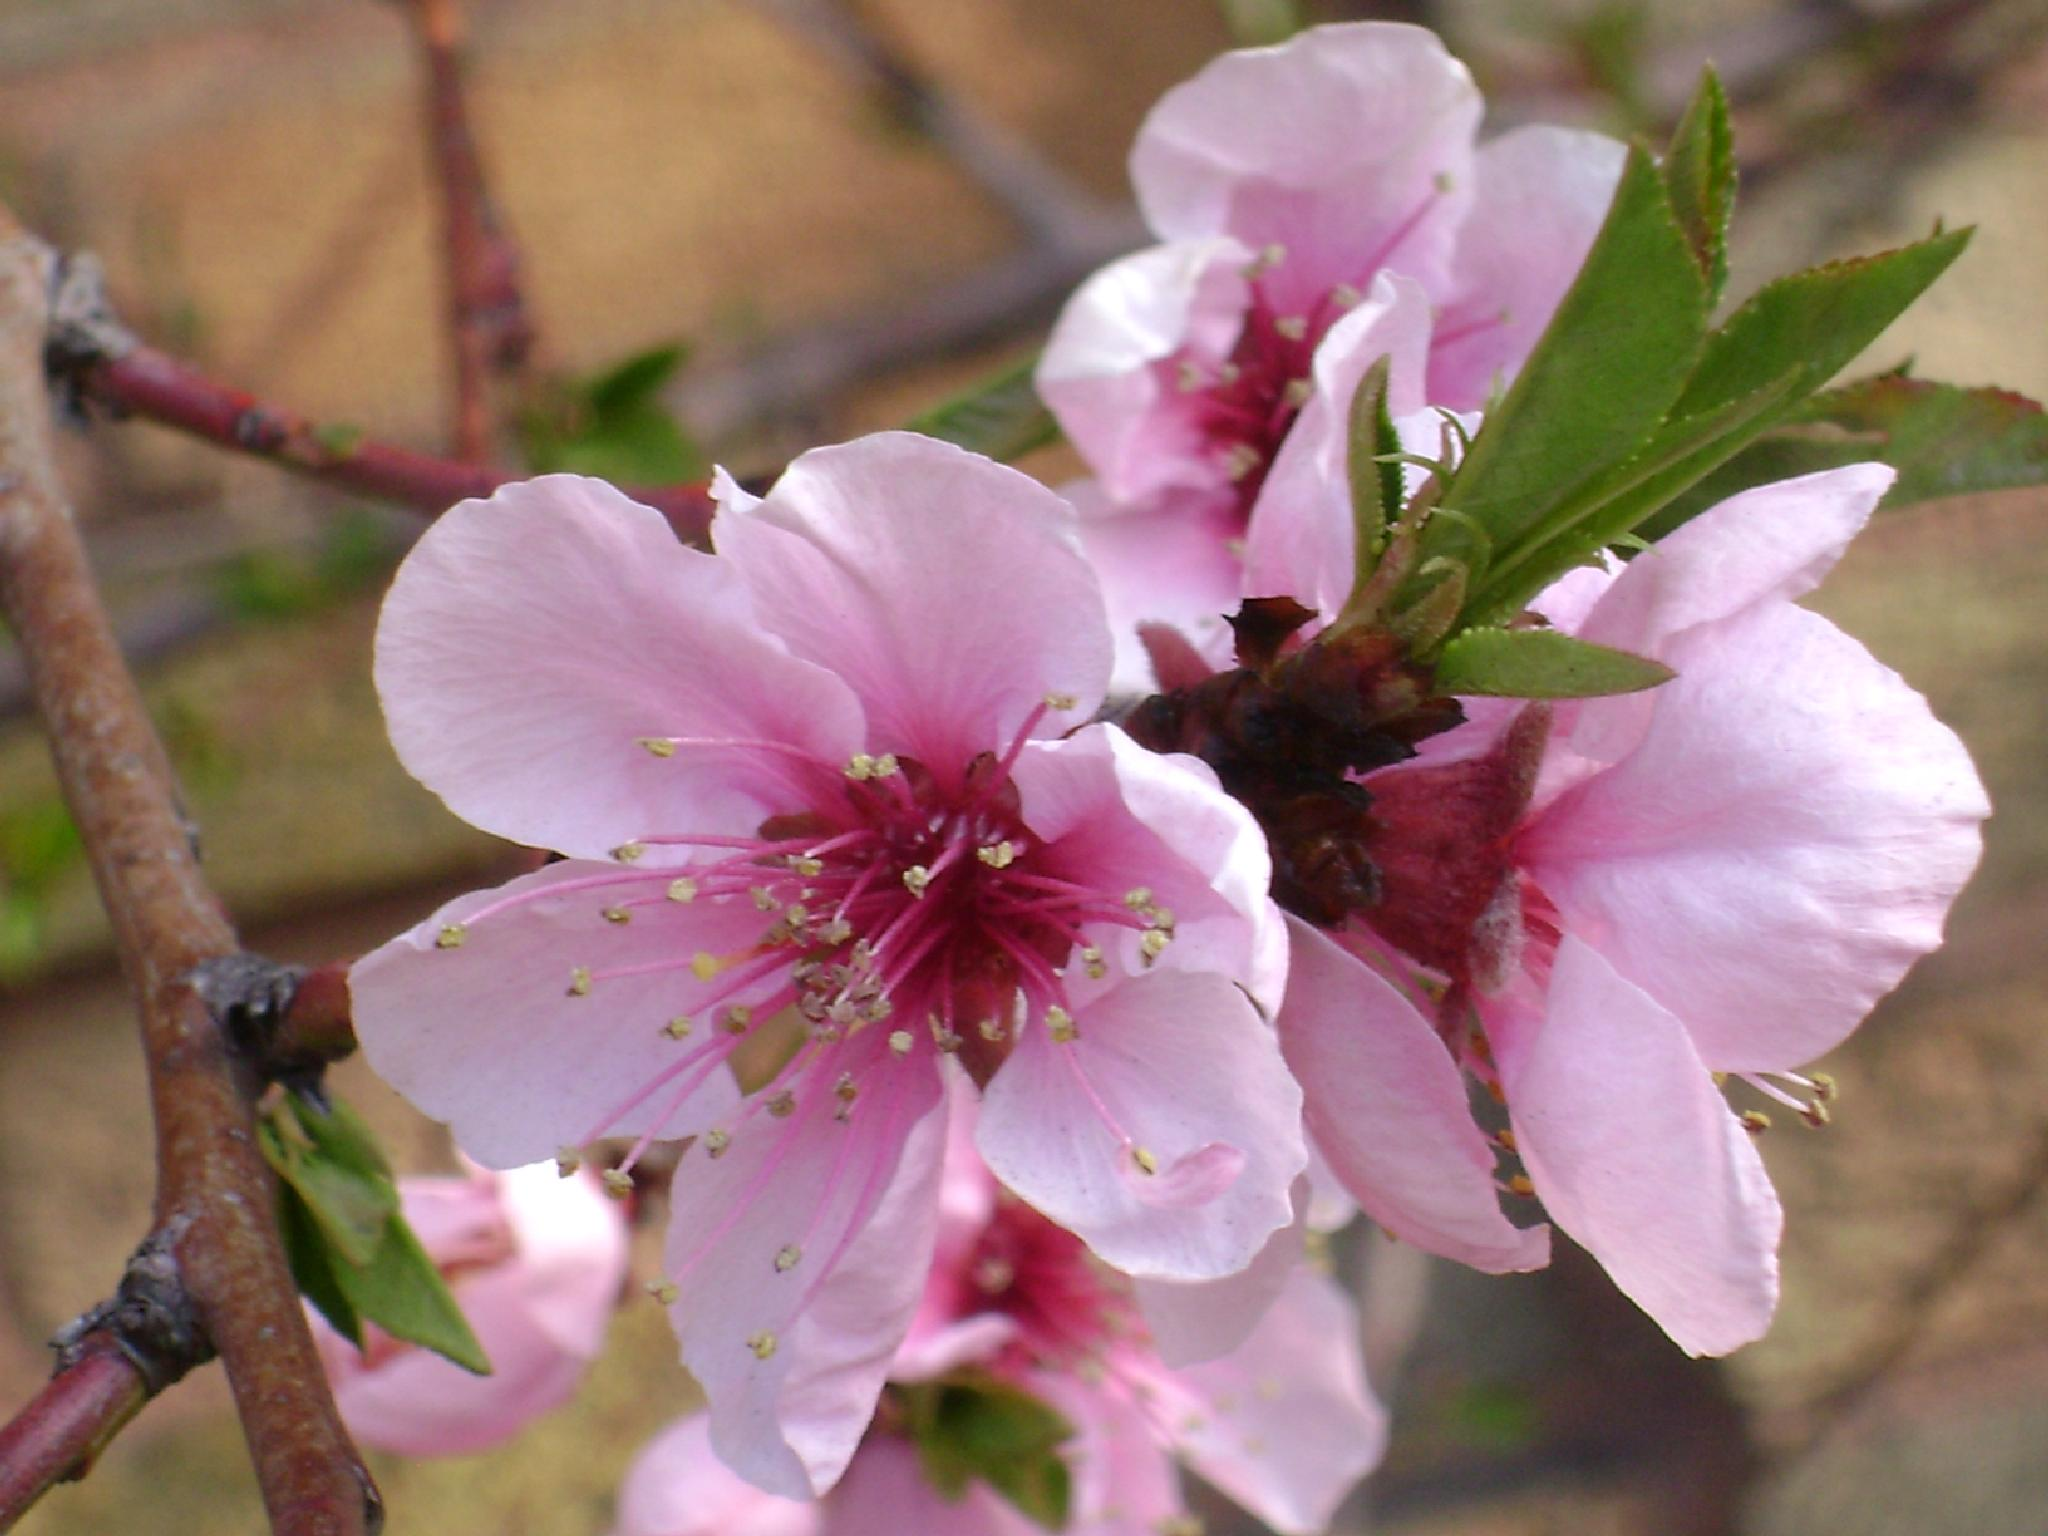 Peach tree blossoms by Diana Marenfeld